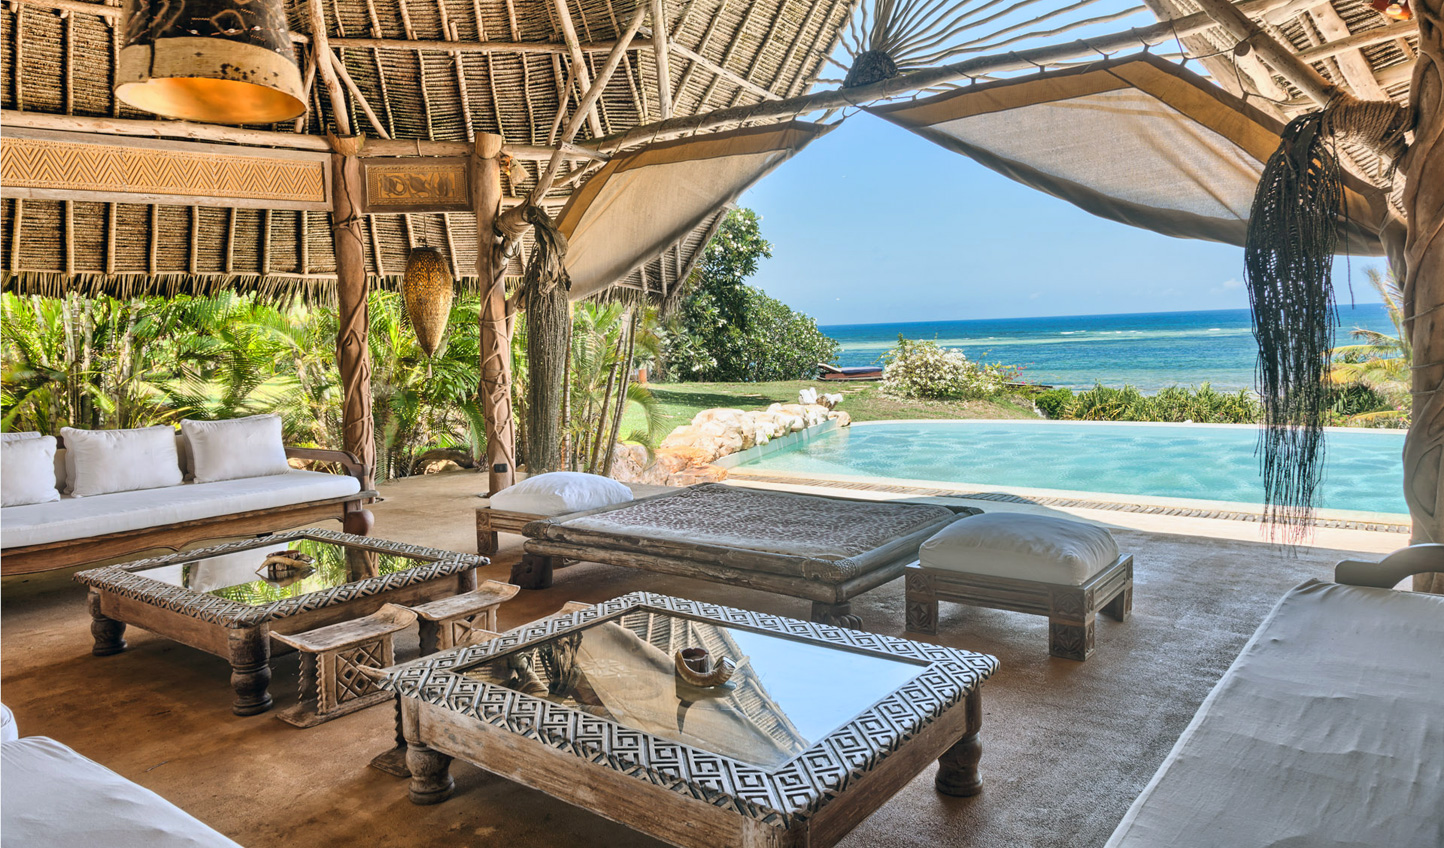 Relax in total tranquility in the Garden Villa